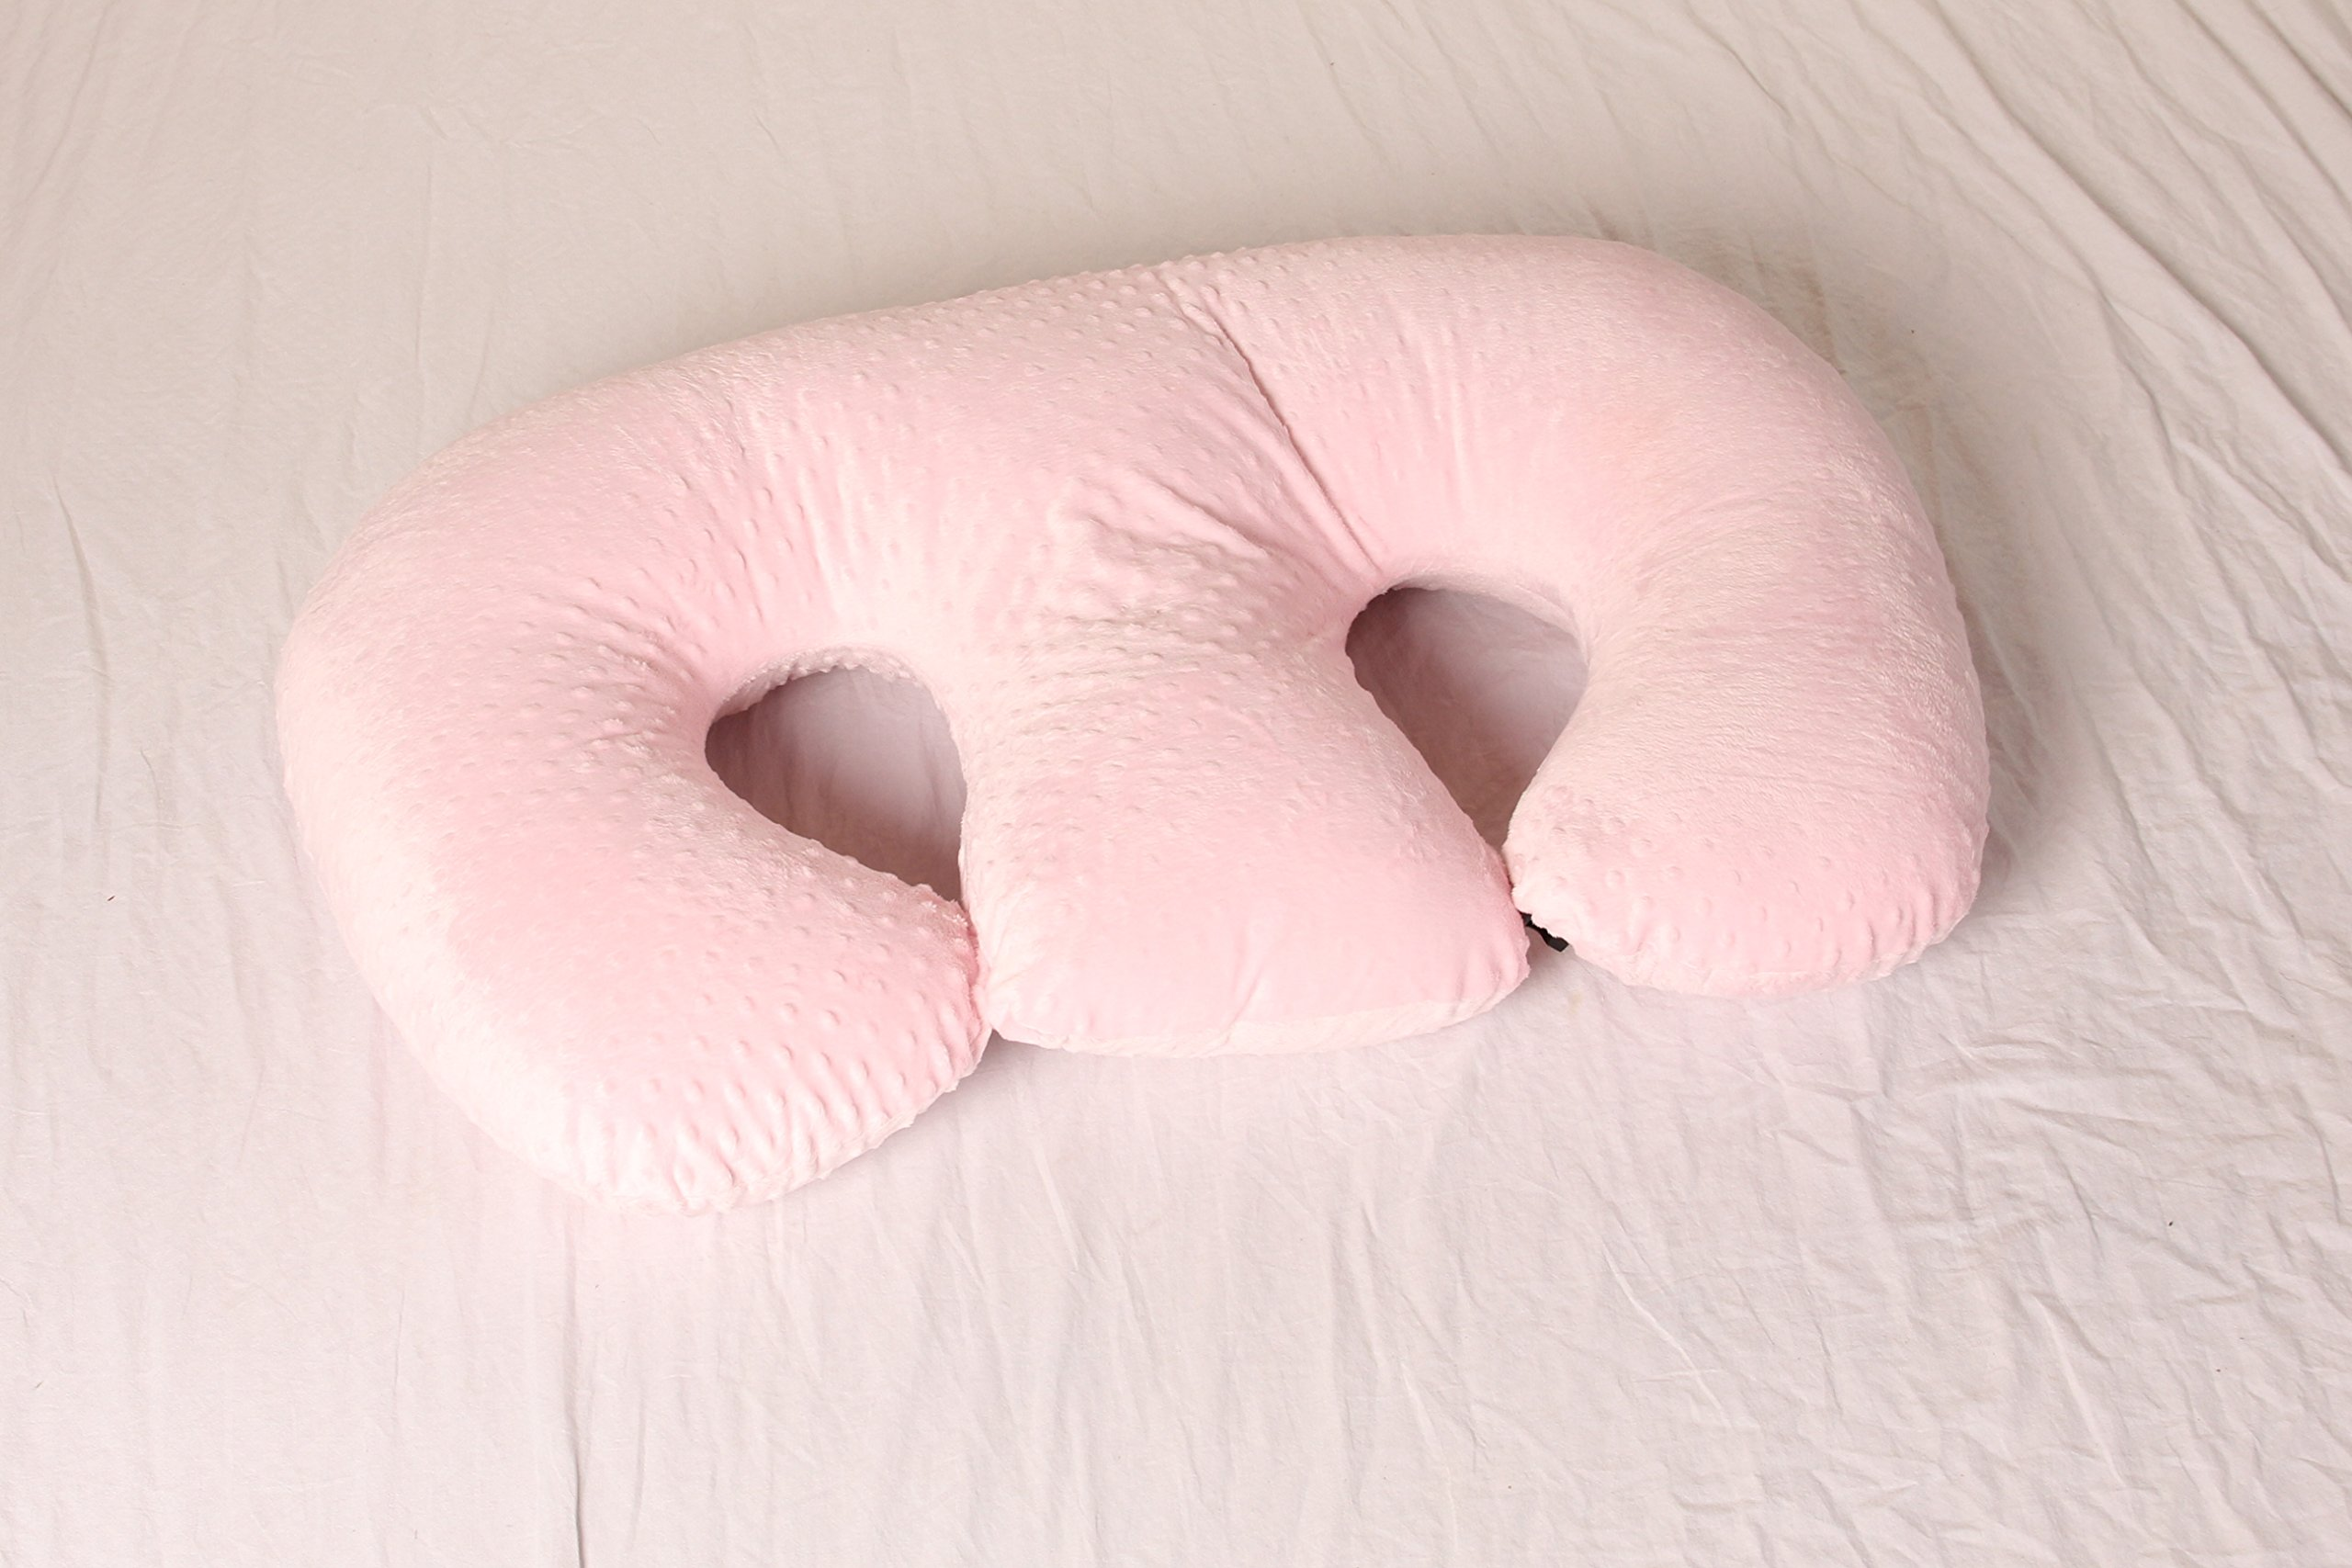 THE TWIN Z PILLOW - PINK The only 6 in 1 Twin Pillow Breastfeeding, Bottlefeeding, Tummy Time & Support! A MUST HAVE FOR TWINS! - CUDDLE PINK DOTS by Twin Z PIllow (Image #3)